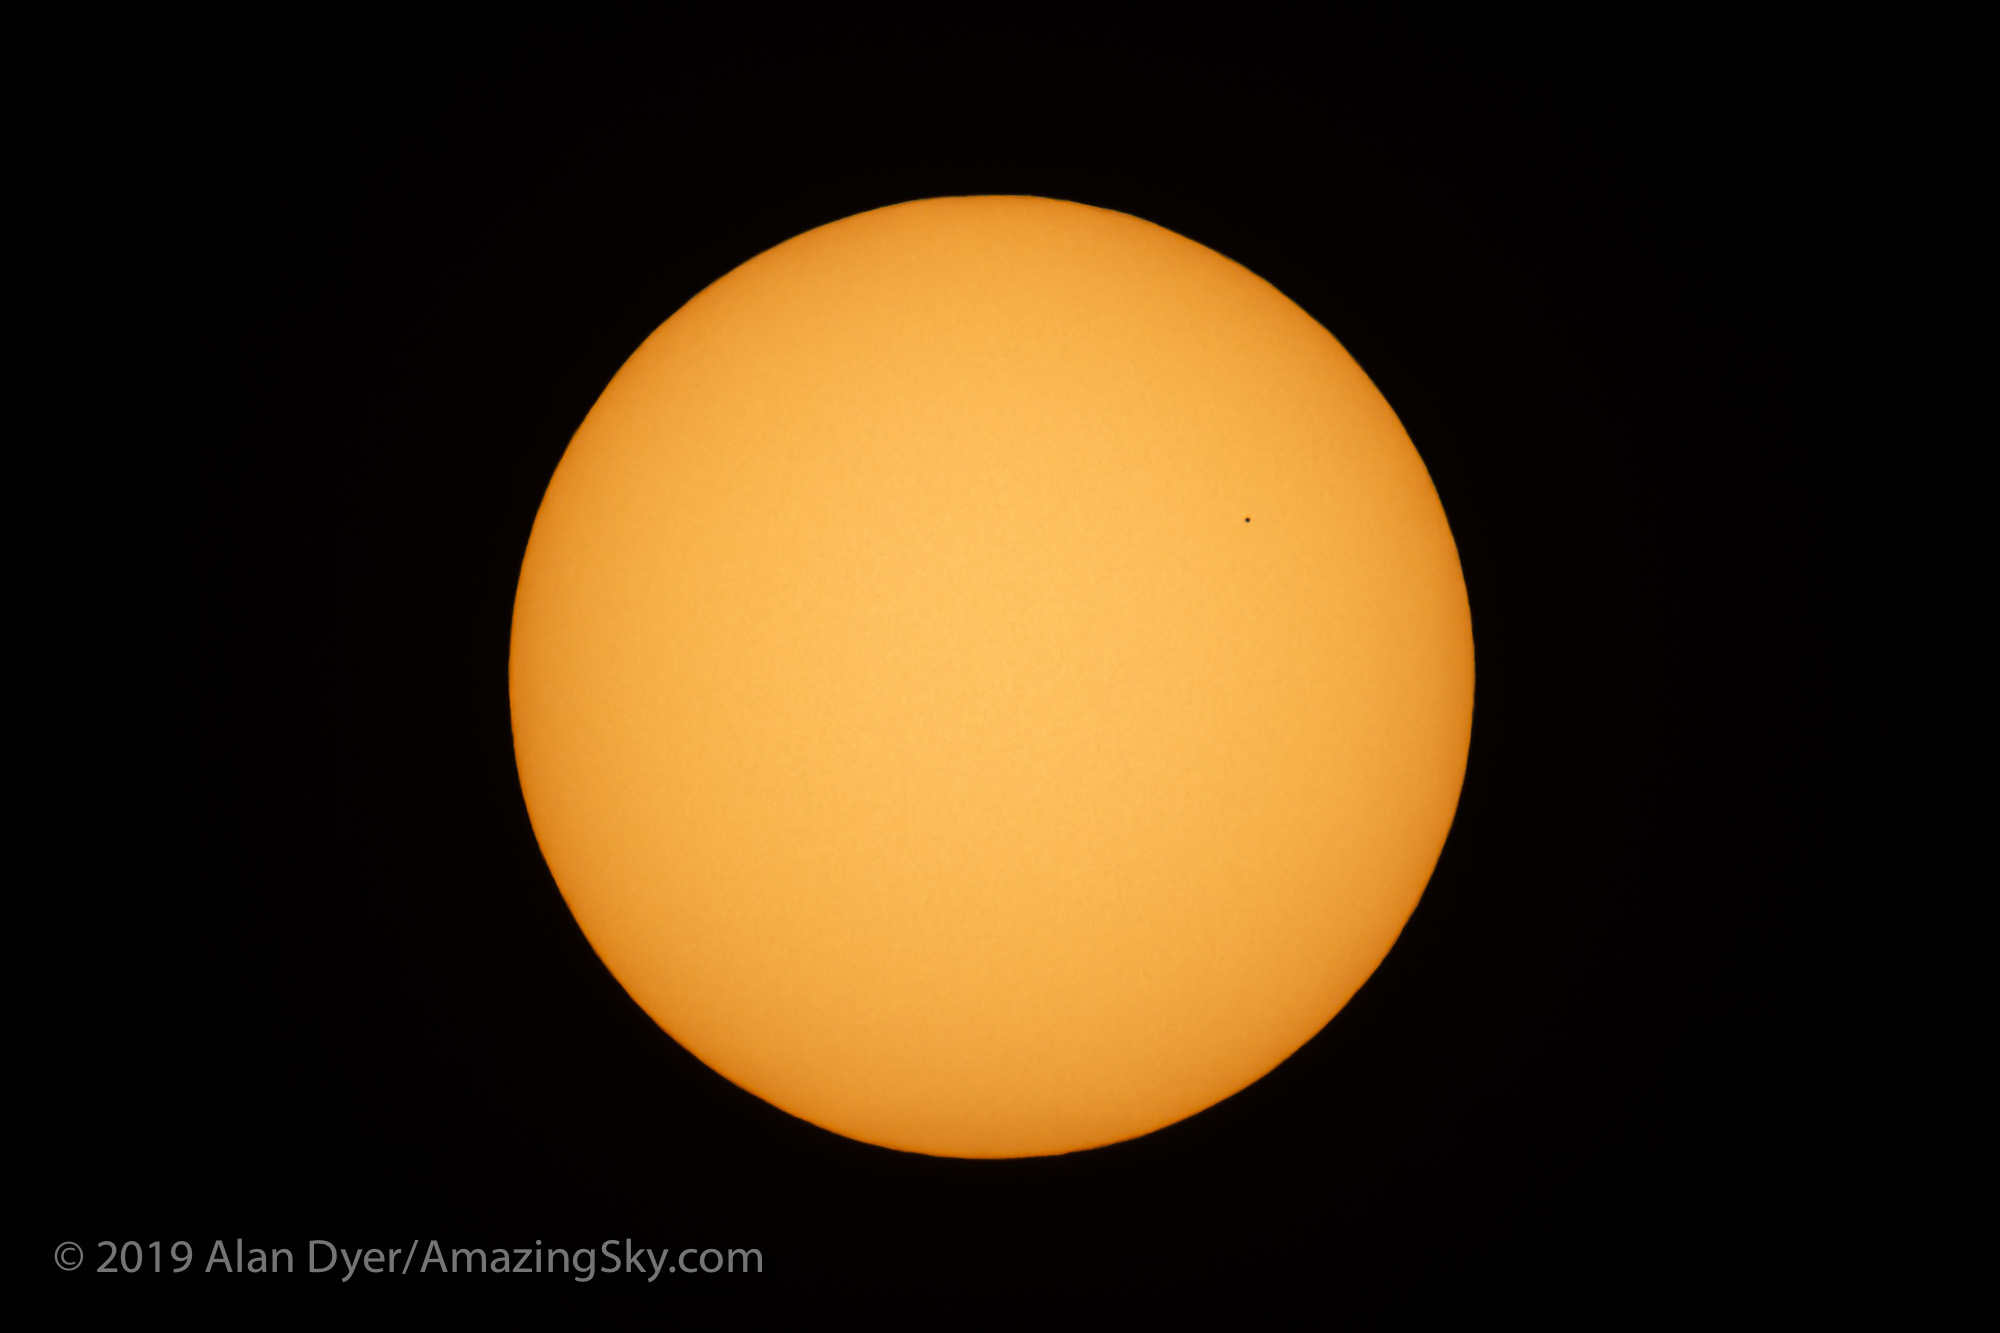 The Transit of Mercury Across the Sun (10 am MST)